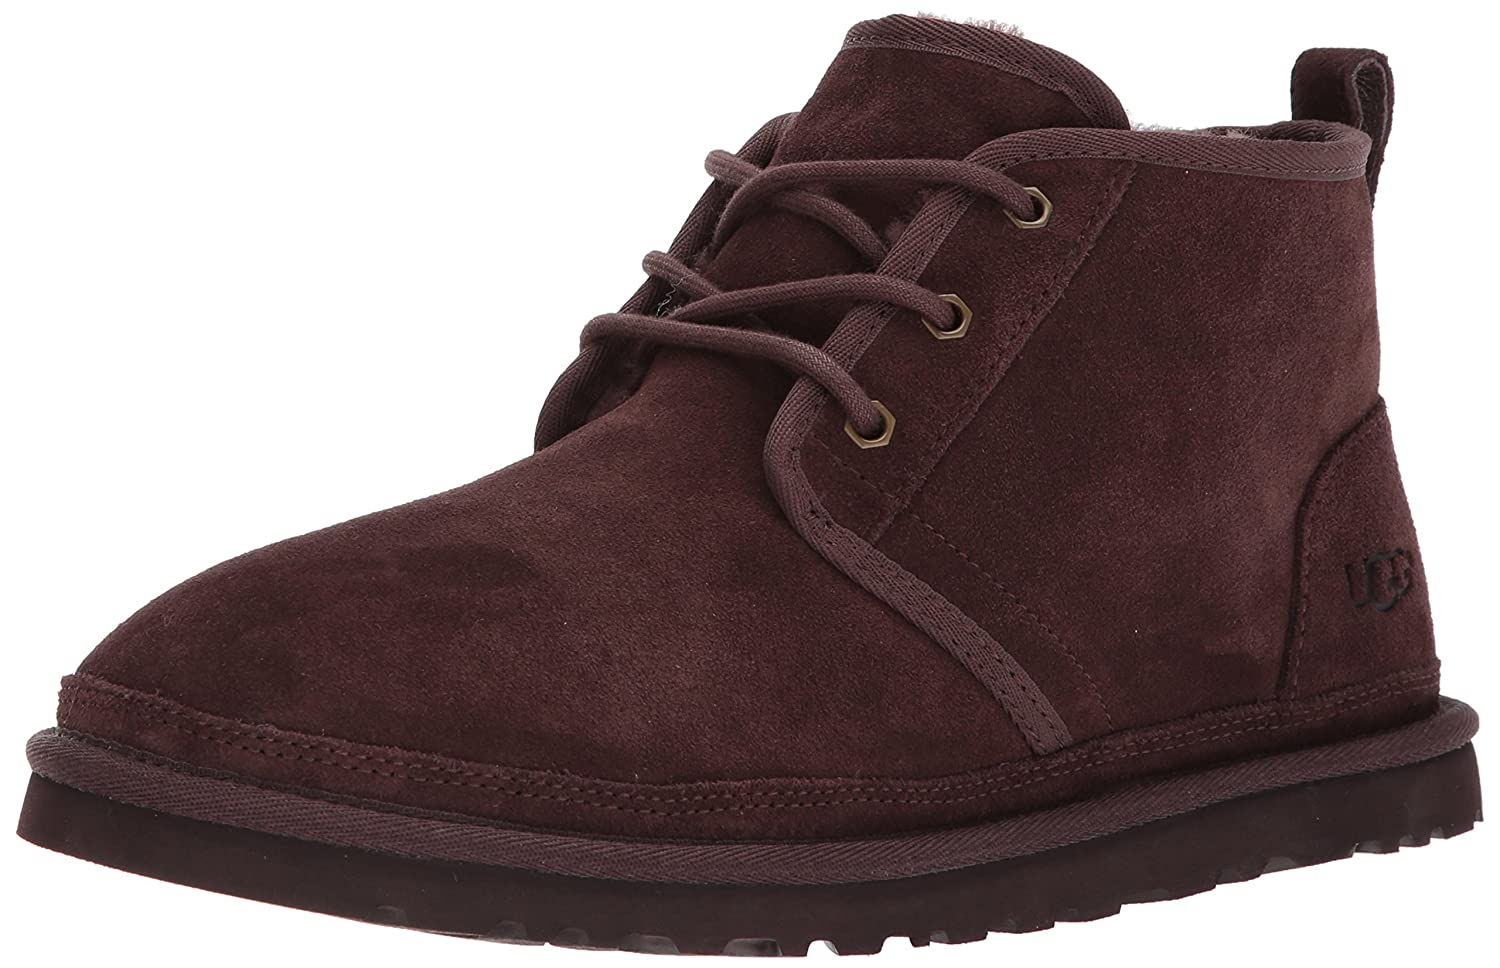 UGG 3236 Australia Men s Neumel Sneaker  Amazon.co.uk  Shoes   Bags 21ea37db7